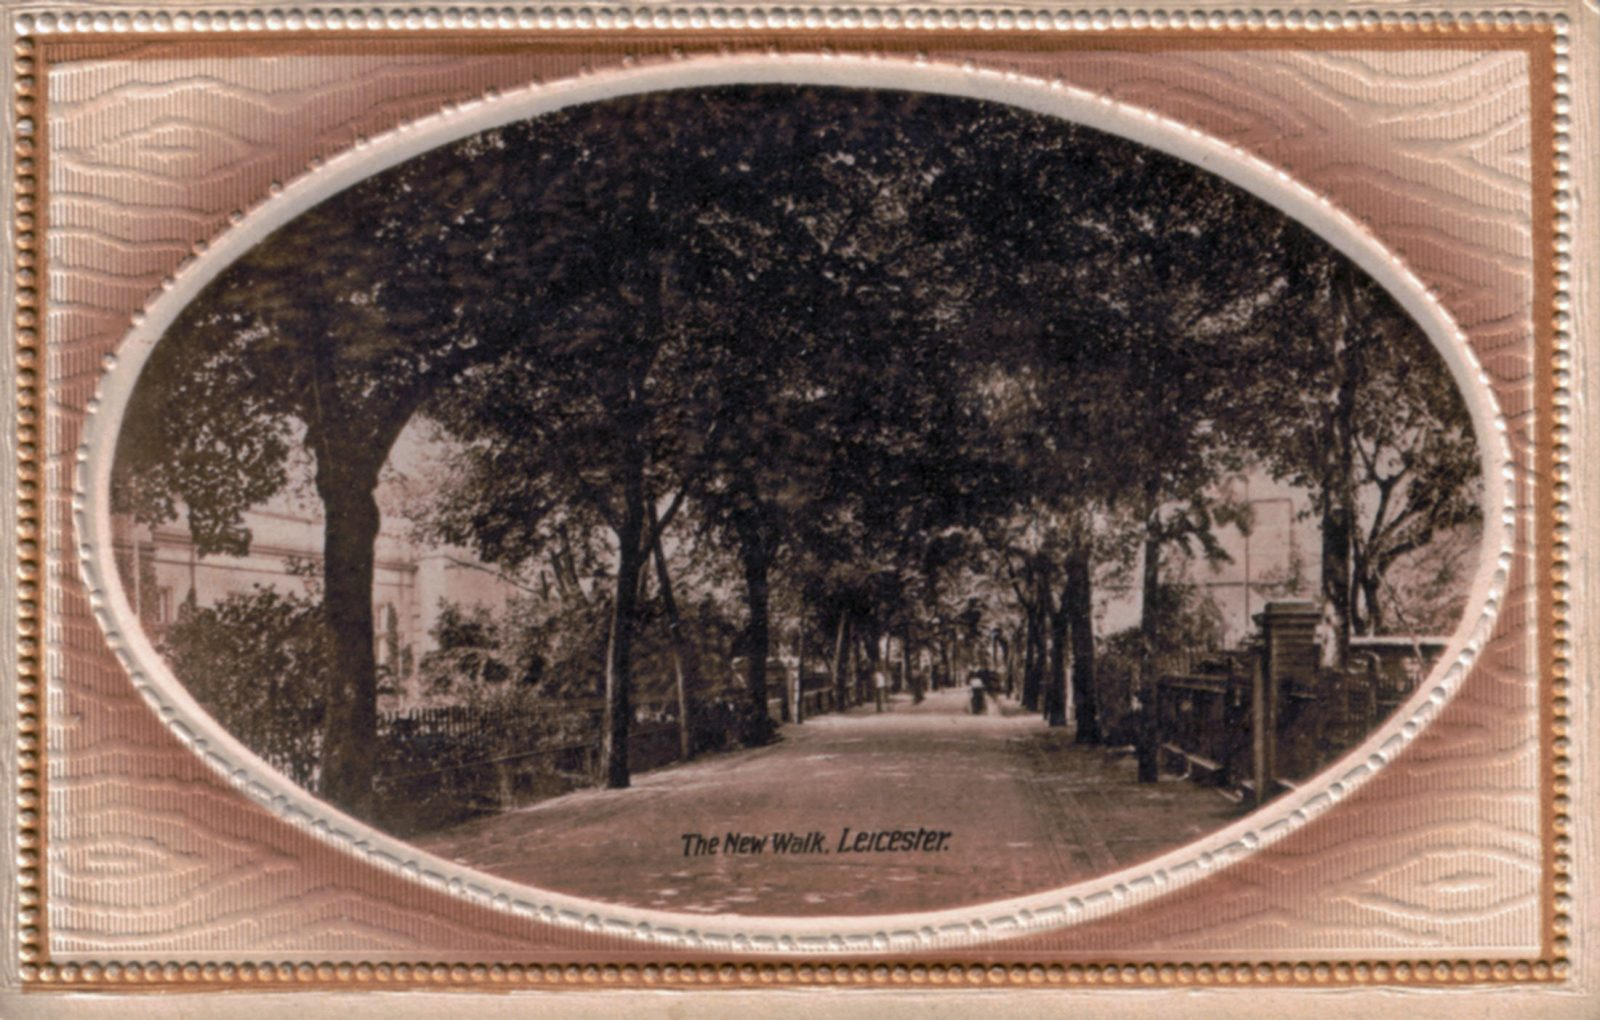 New Walk, Leicester. 1901-1920: Oval image, showing New Walk extending into distance. Houses to either side. (File:1108)